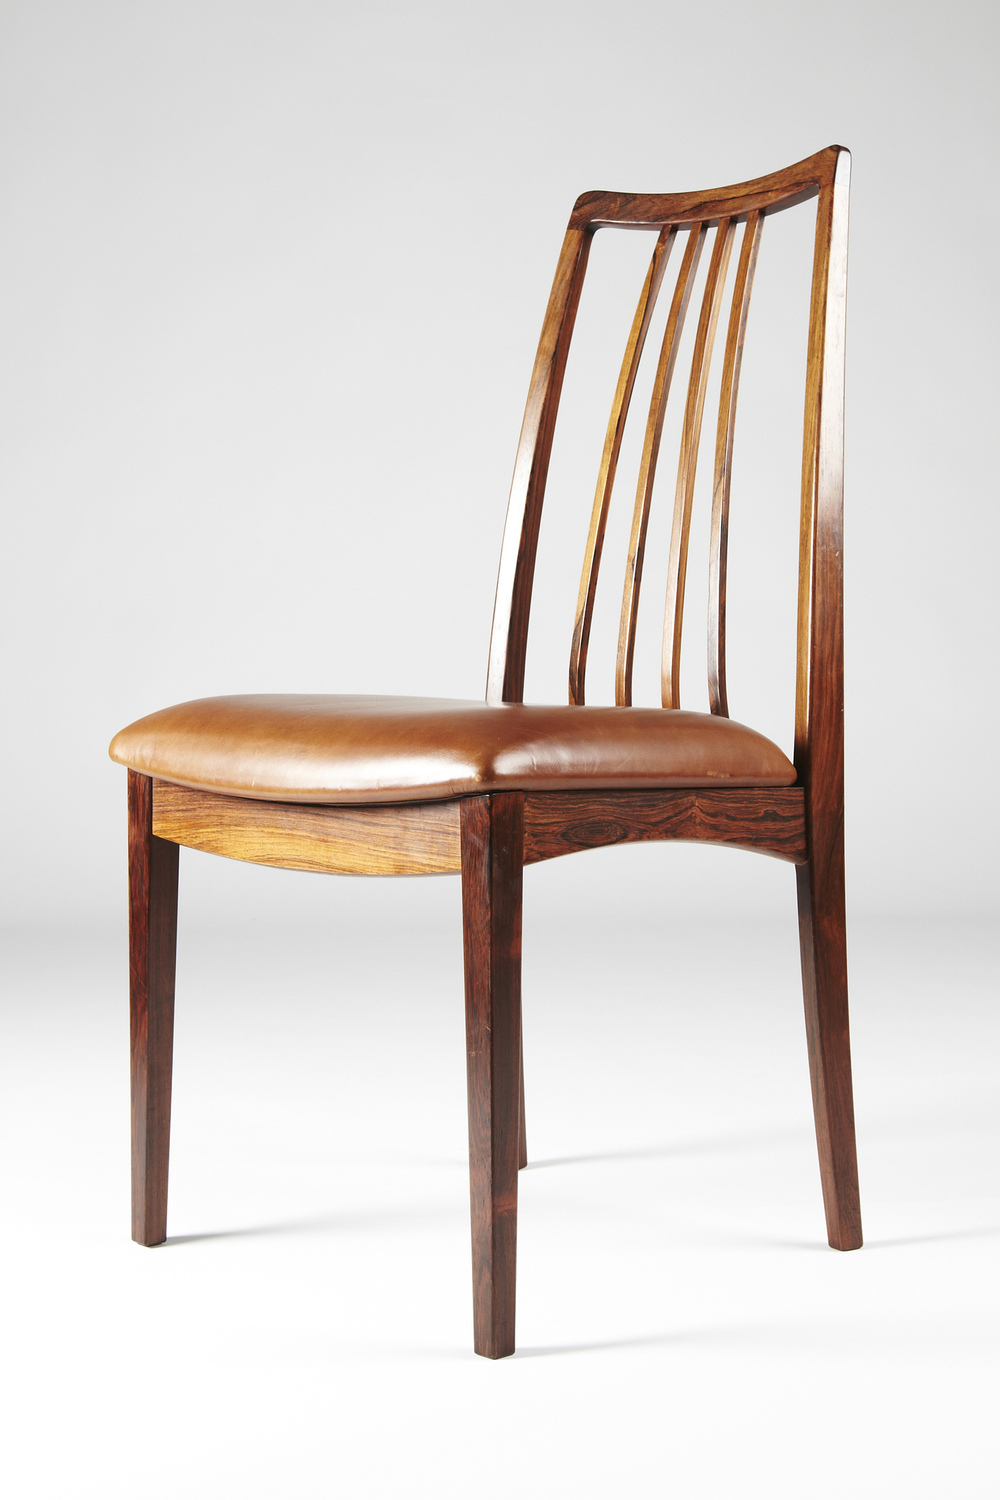 Koefoed 1959 dining chair3_resize.jpg